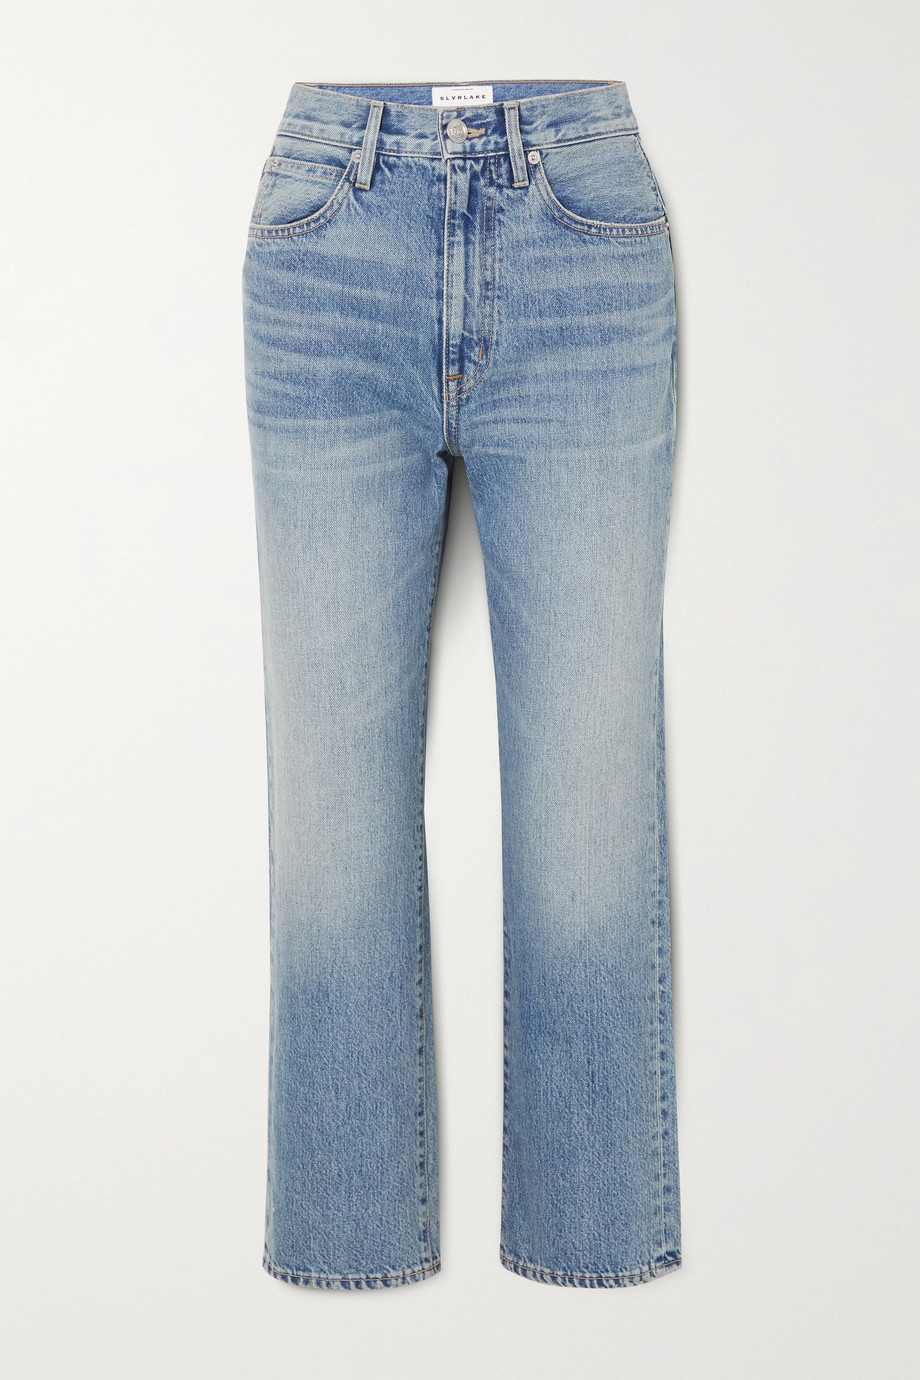 SLVRLAKE London cropped high-rise straight-leg jeans